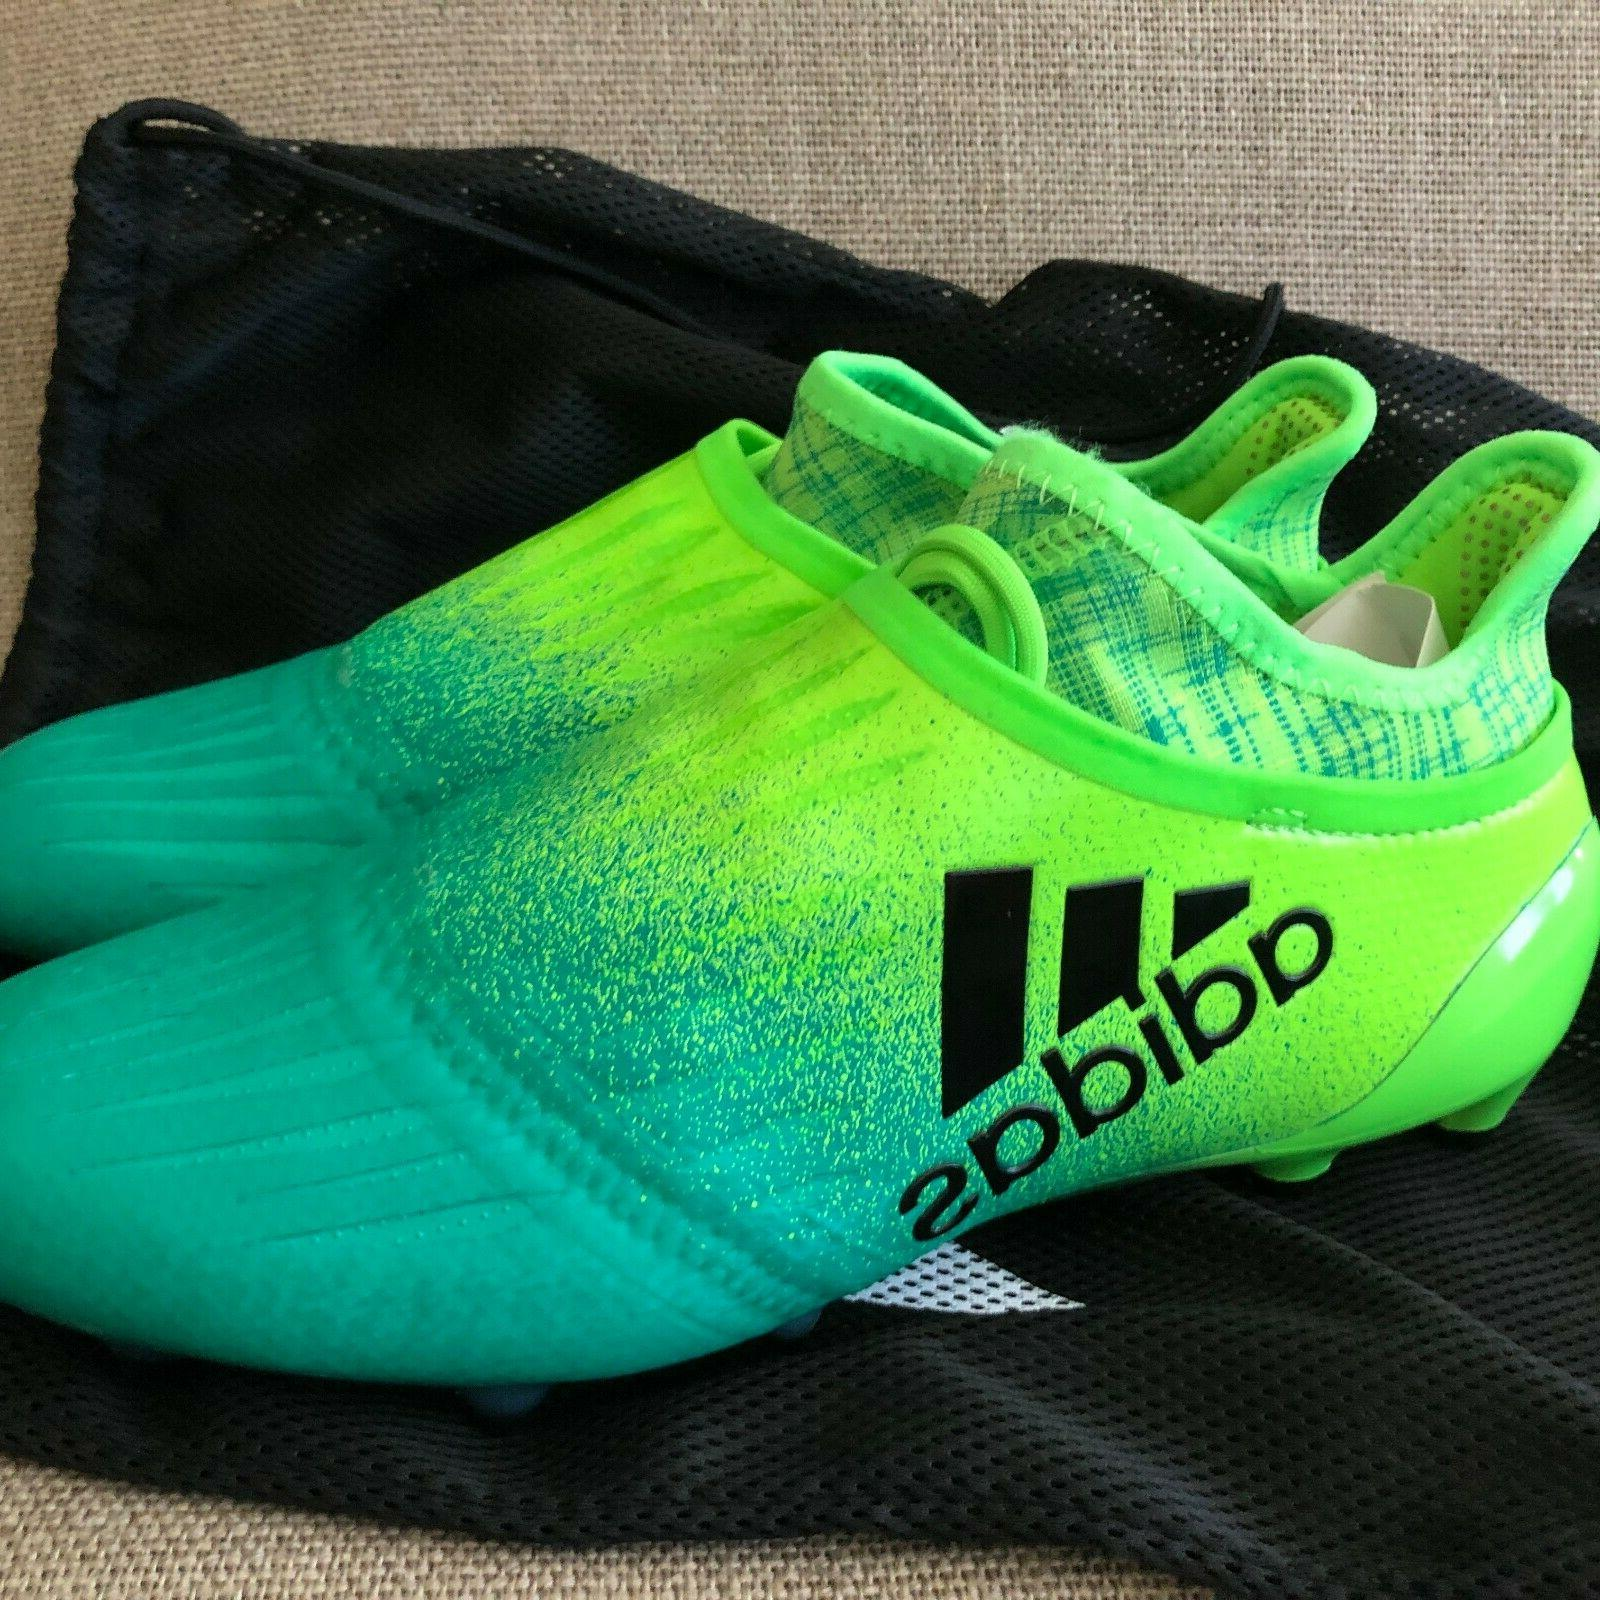 Adidas FG SIZE 8 Soccer Cleats Green BB1075